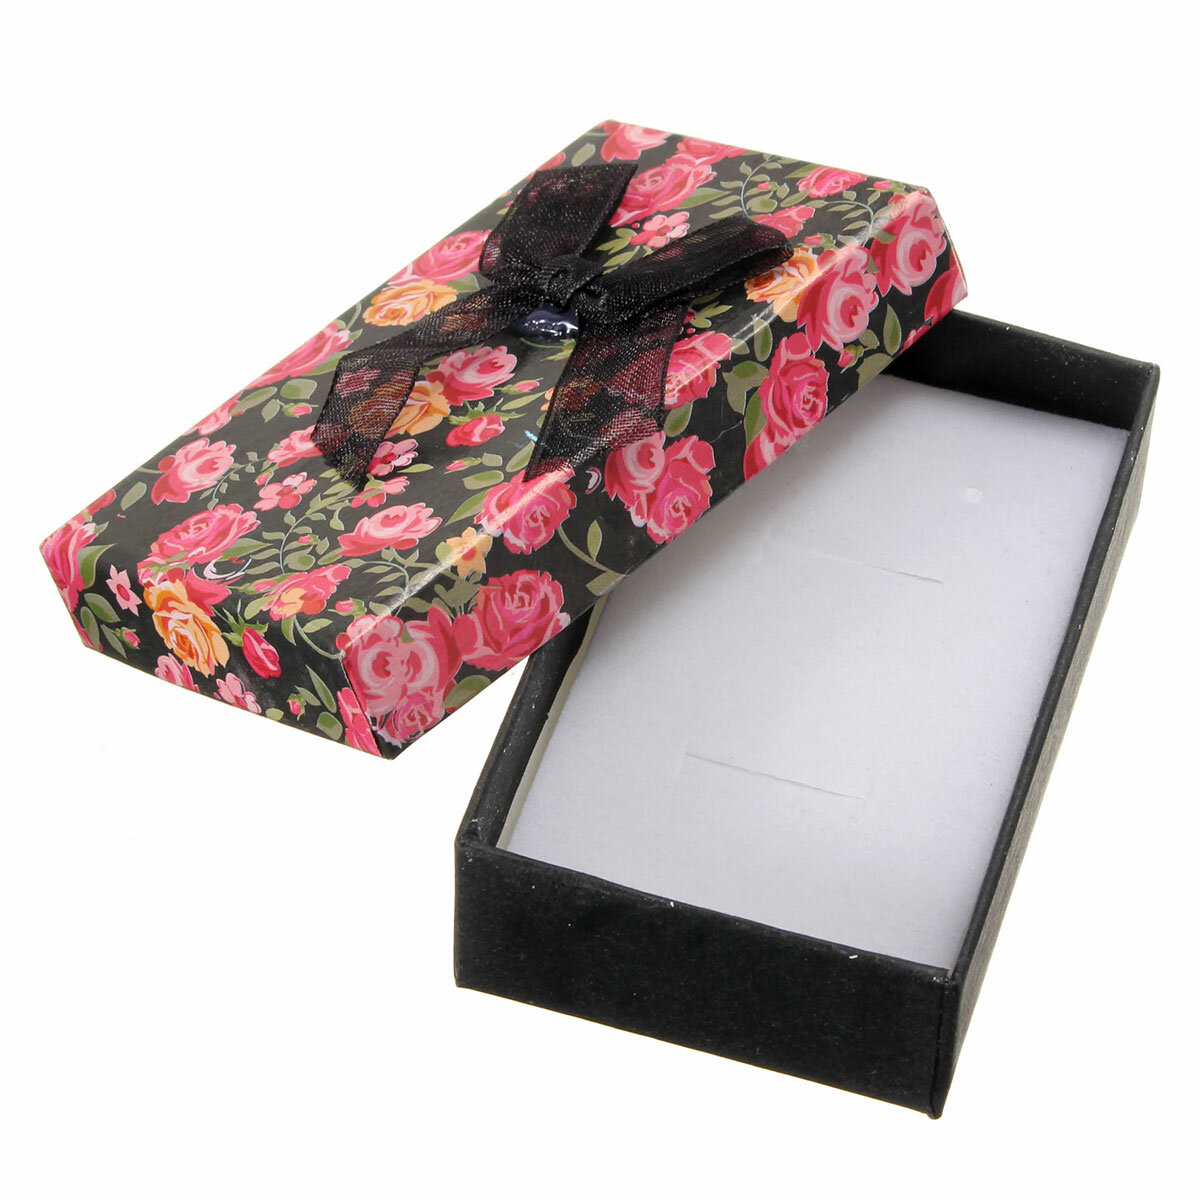 Flower_Bowknot_Jewelry_Paper_Gift_Box